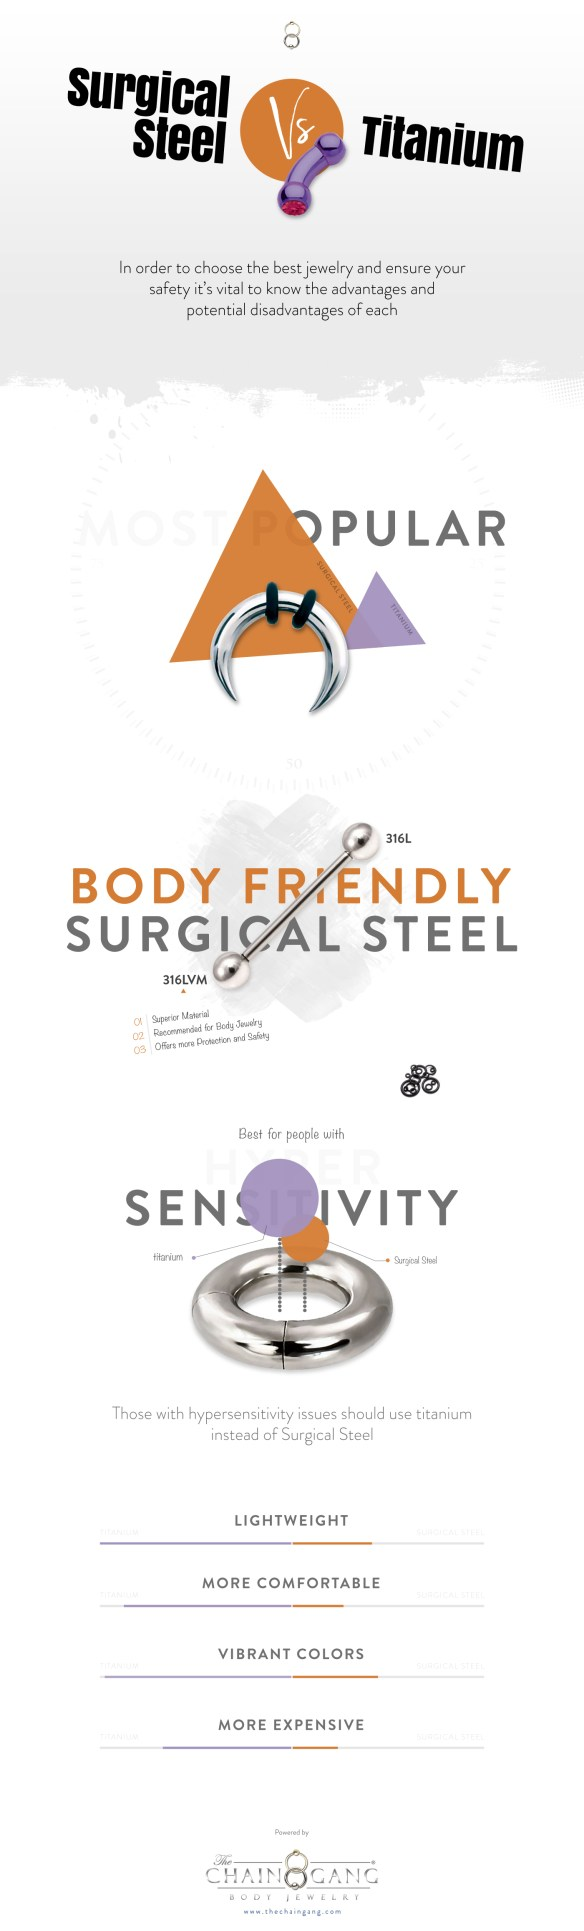 Surgical Steel vs Titanium - Infographic